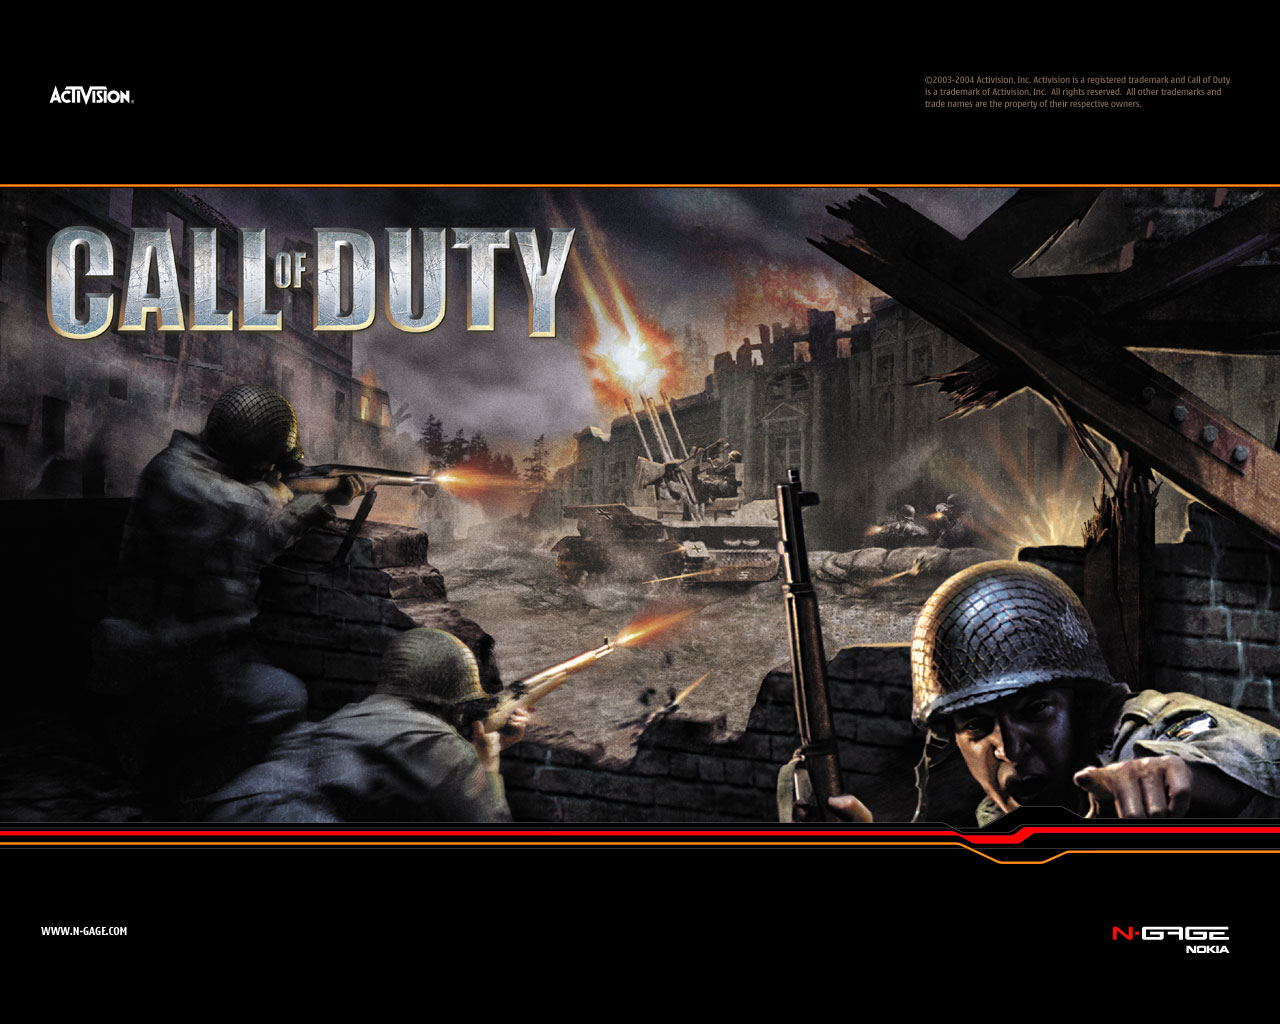 PS2 Online Games Images COD Wallpaper HD And Background Photos